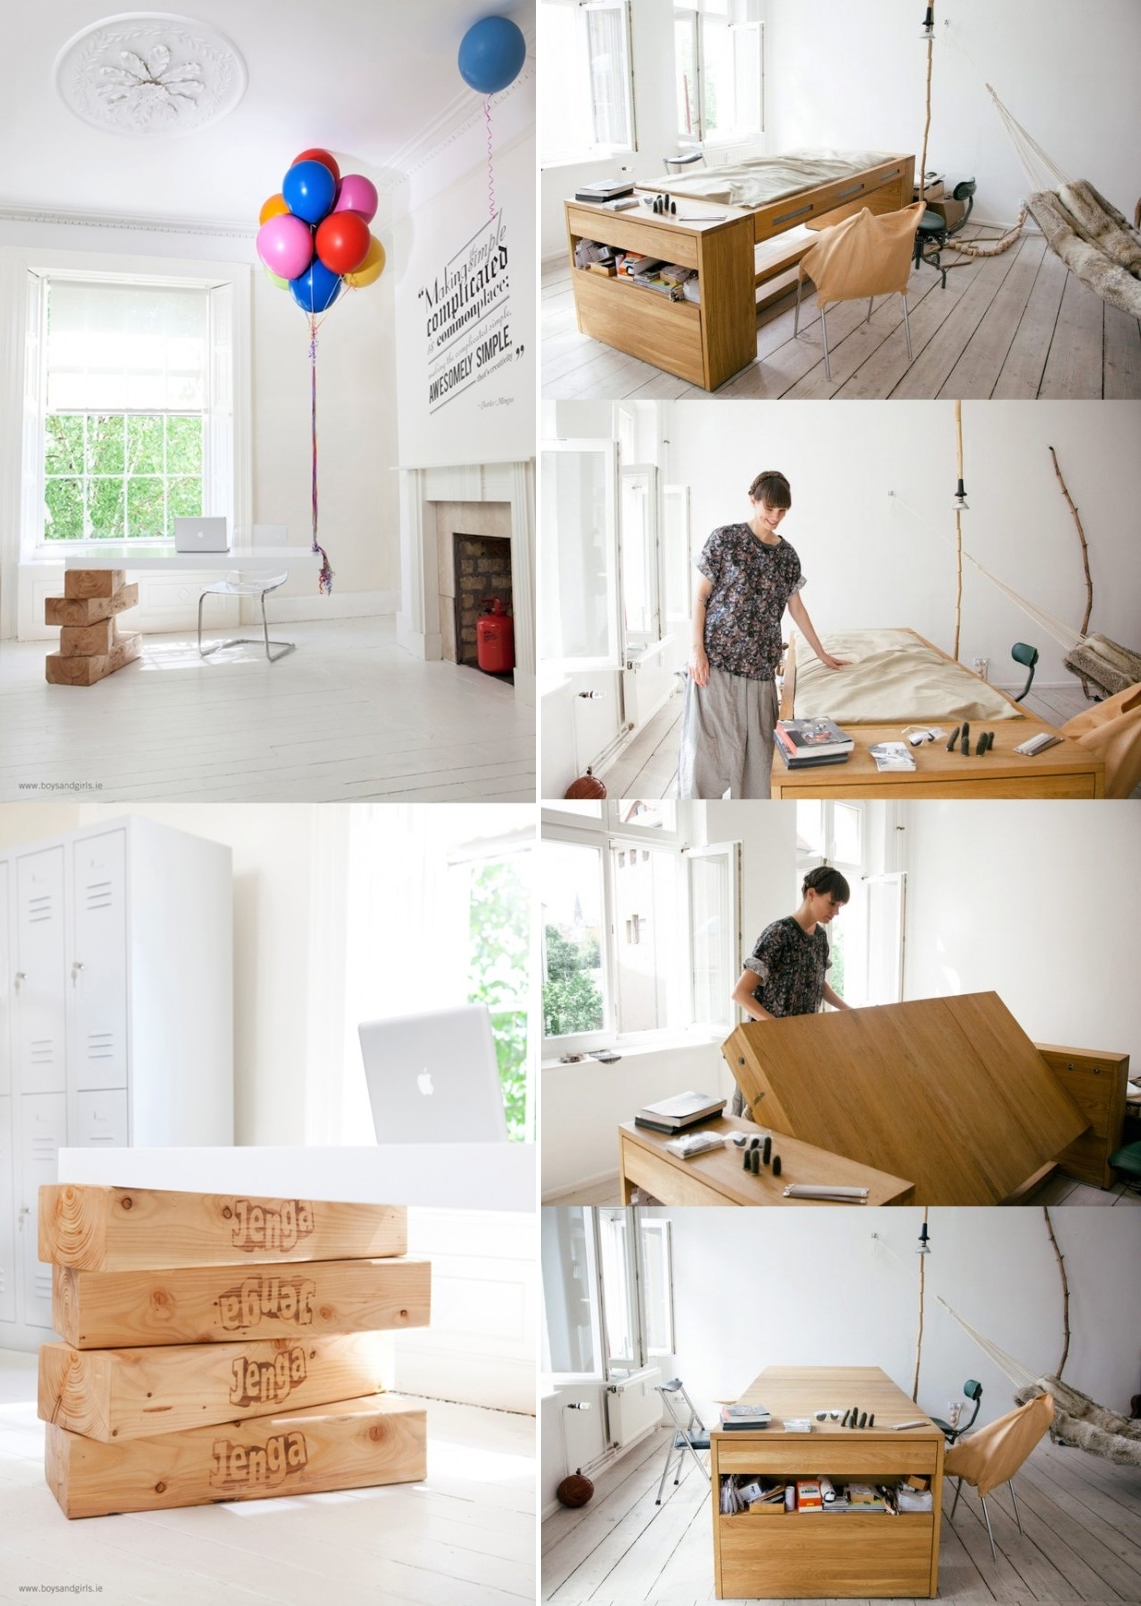 15 Cool Ideas On How To Turn Your Home Into An Office